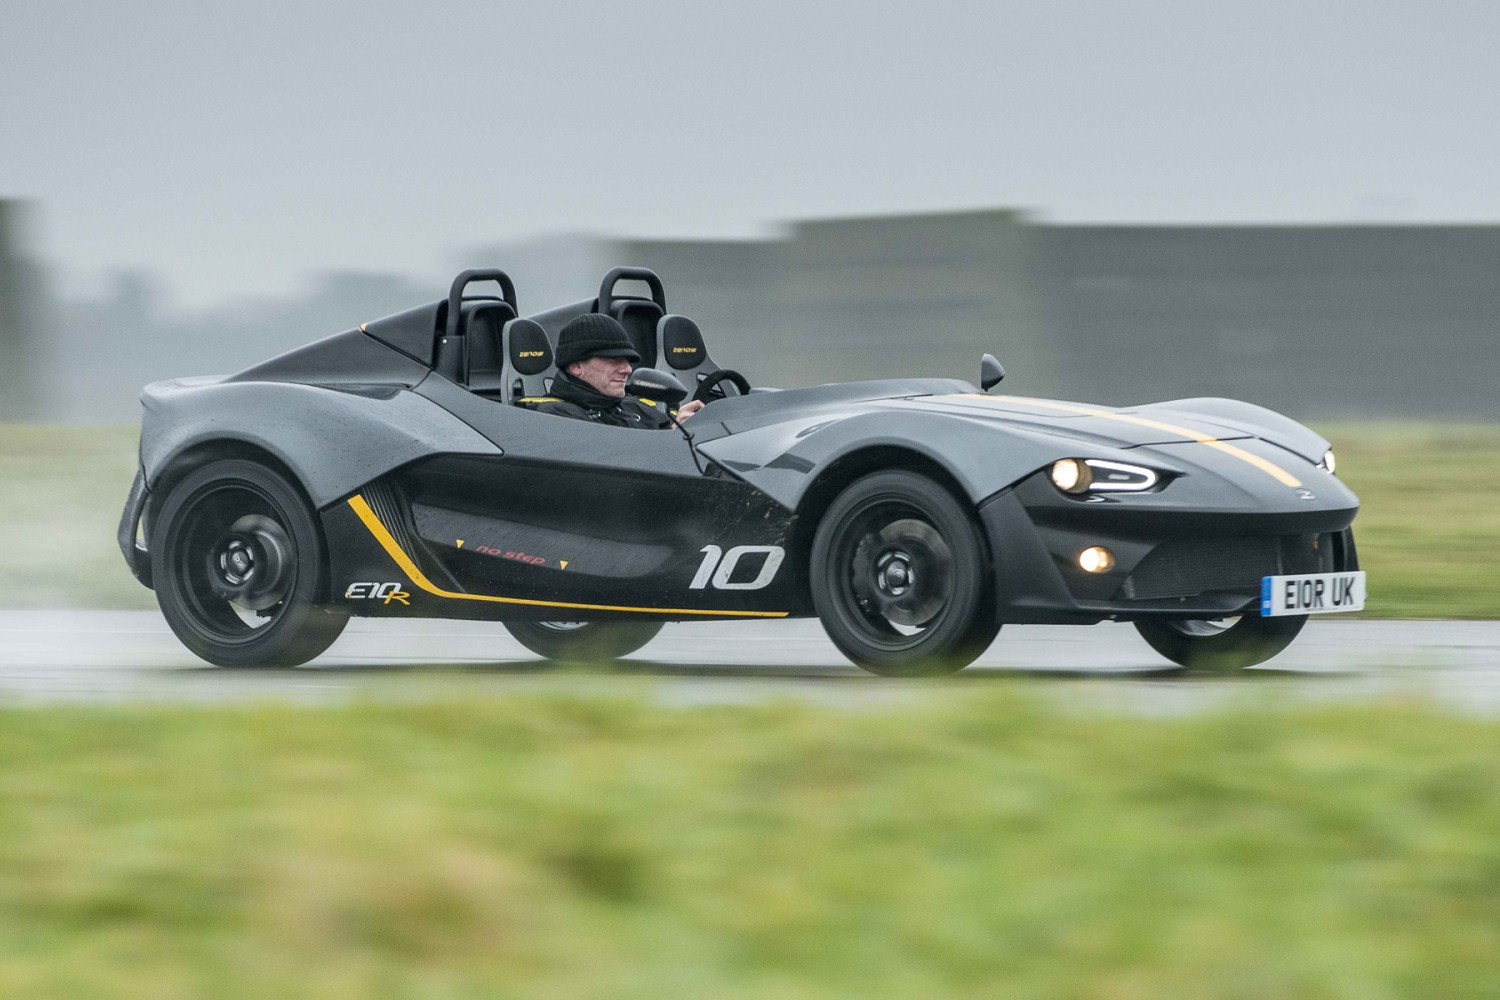 Norfolk sports car manufacturer Zenos has gone into administration